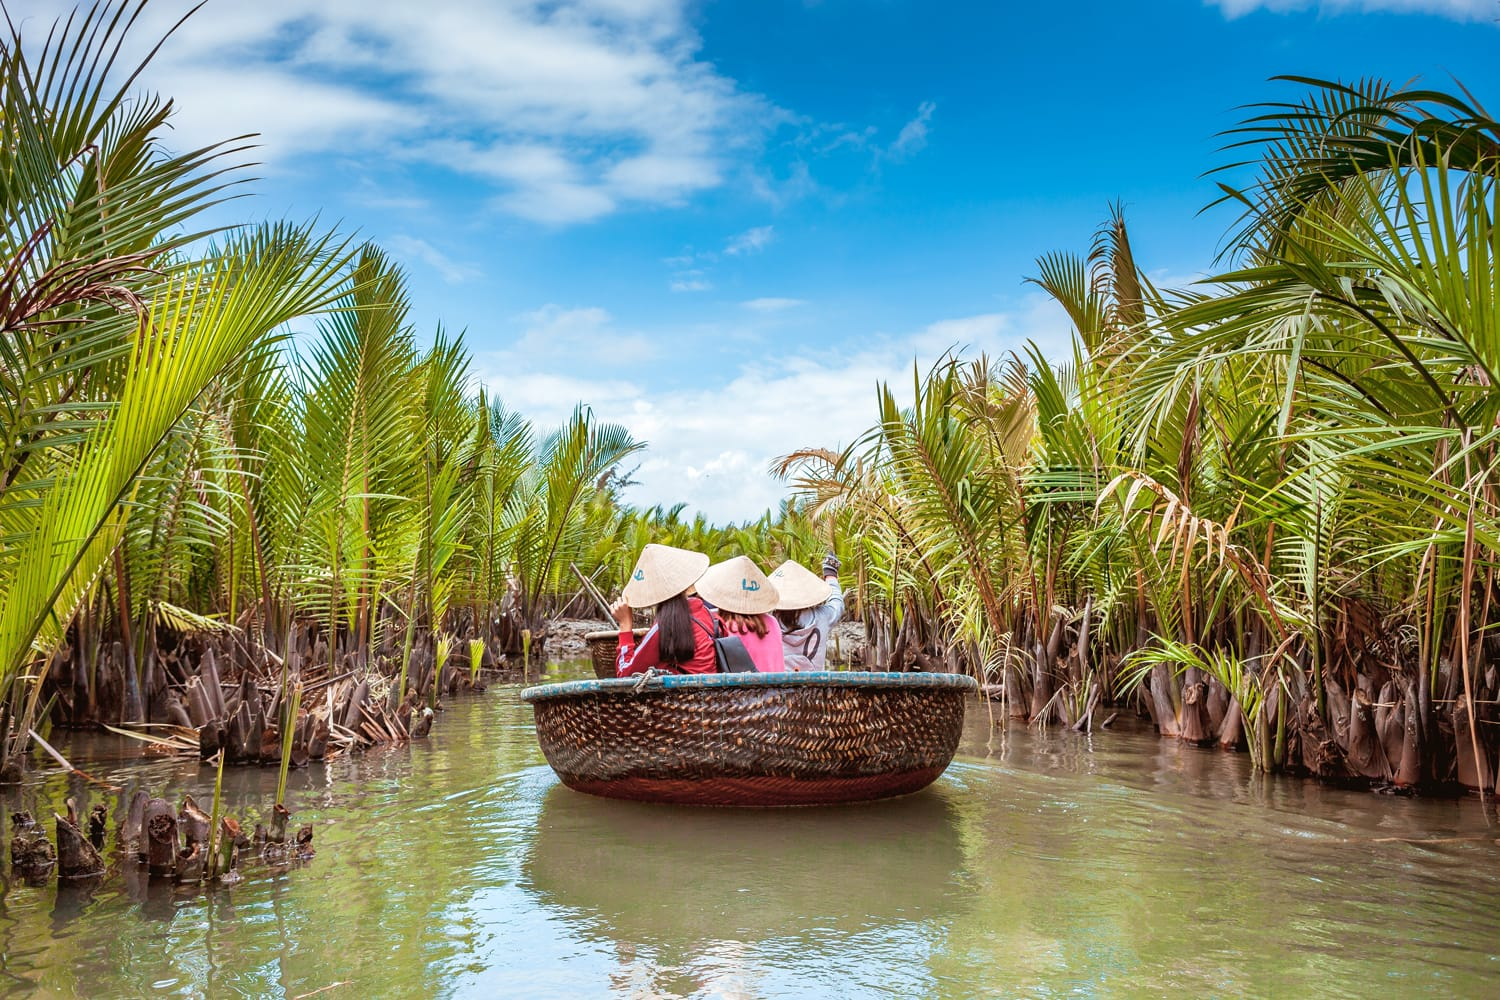 Tourists visit water coconut forest in Hoi An, Vietnam